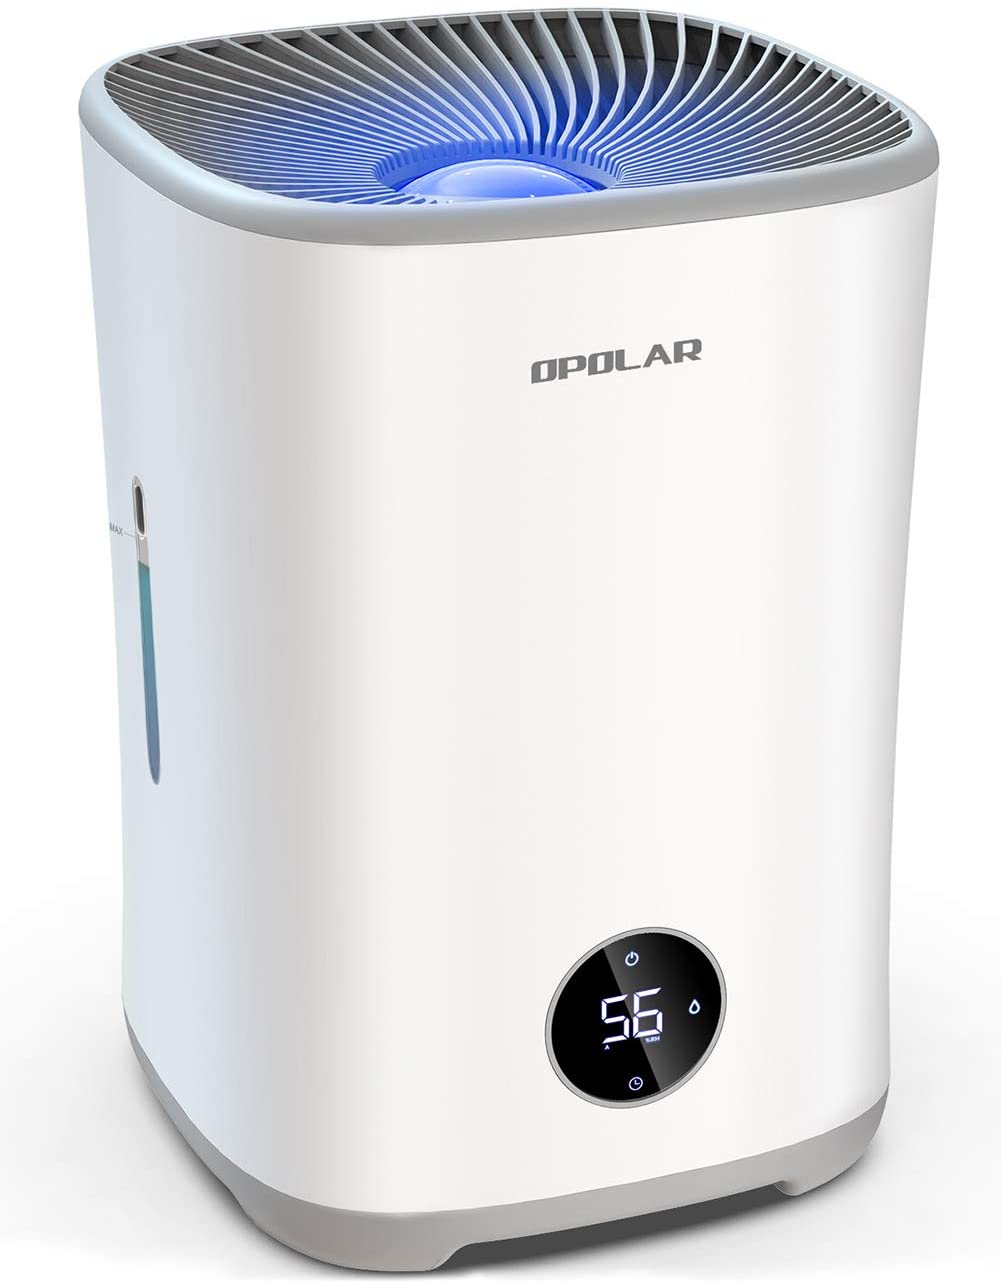 5 Best Humidifier with Humidistat Discussion | How to Choose Wisely